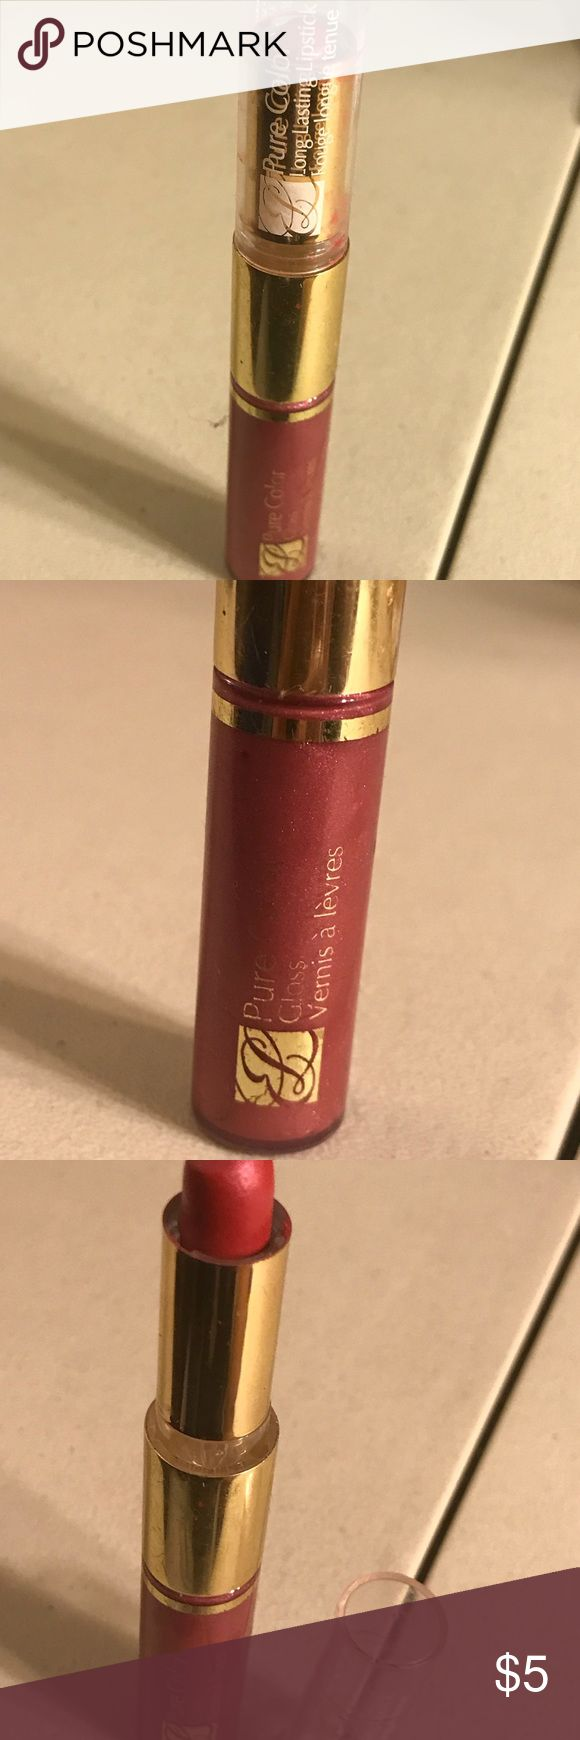 Estée Lauder pure color long lasting lipstick Estée Lauder pure color long lasting lipstick and gloss shimmer, colors are 88 rubellite shimmer and 33 orchid passion shimmer, used. Thanks for checking out Luxury1cosmetics!! Offers are welcomed, bundles are discounted!! Estee Lauder Makeup